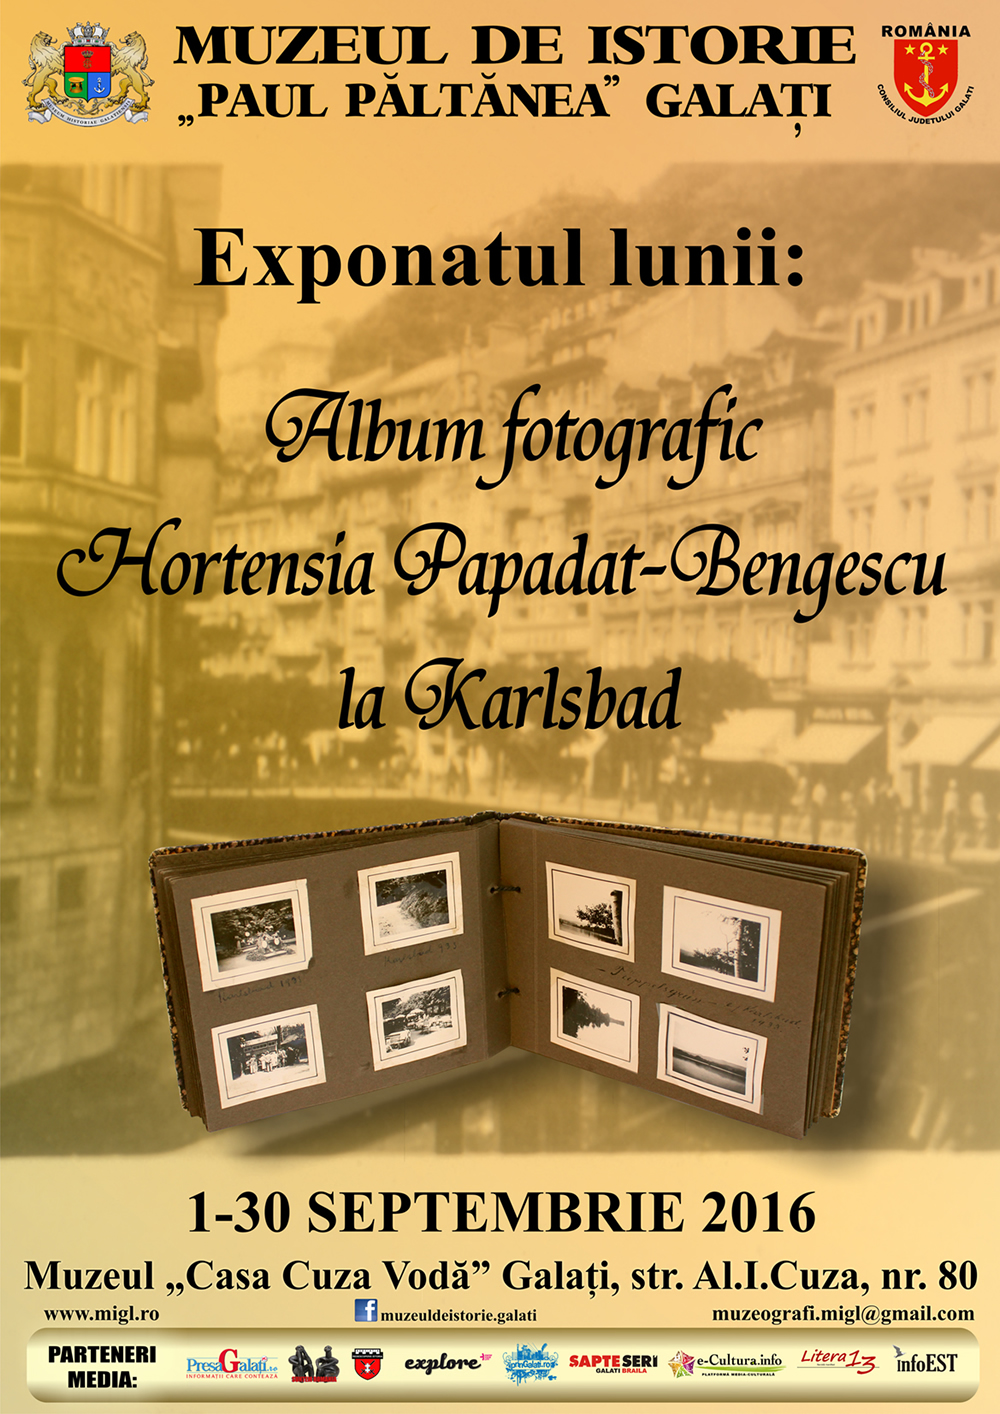 Expo lunii sept 2016